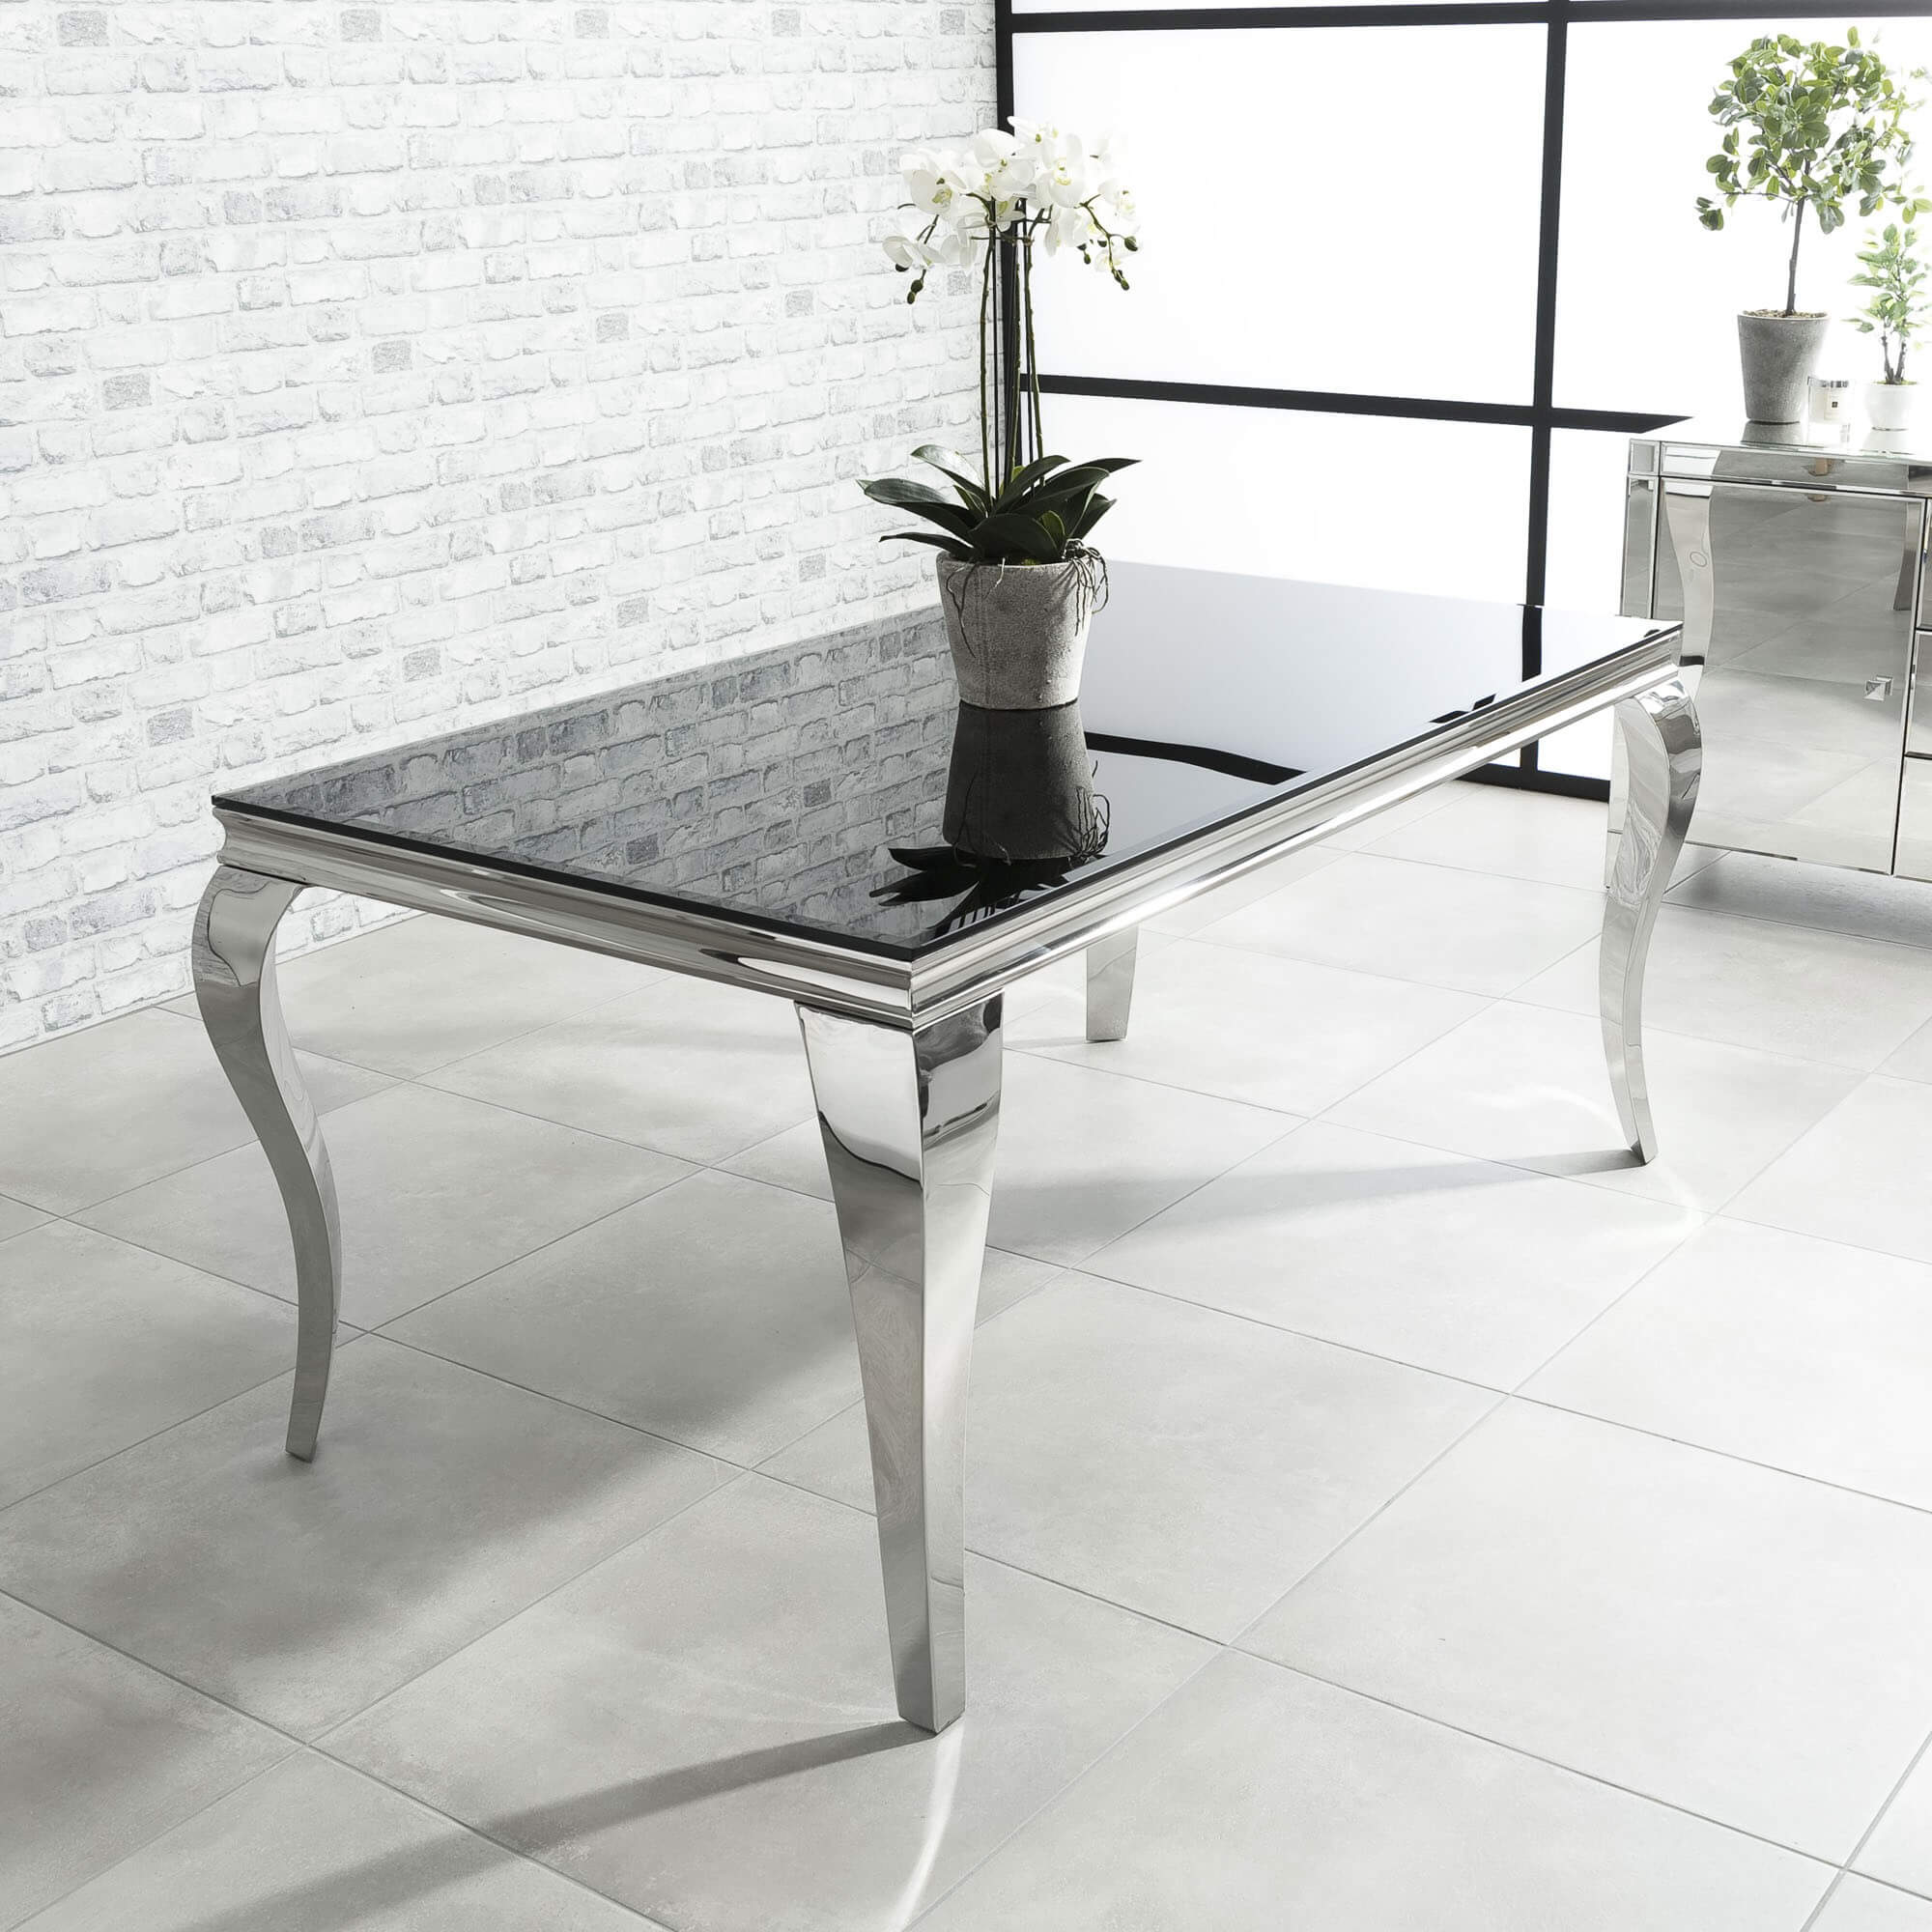 2m Louis Polished Stainless Steel Dining Table with Black Glass